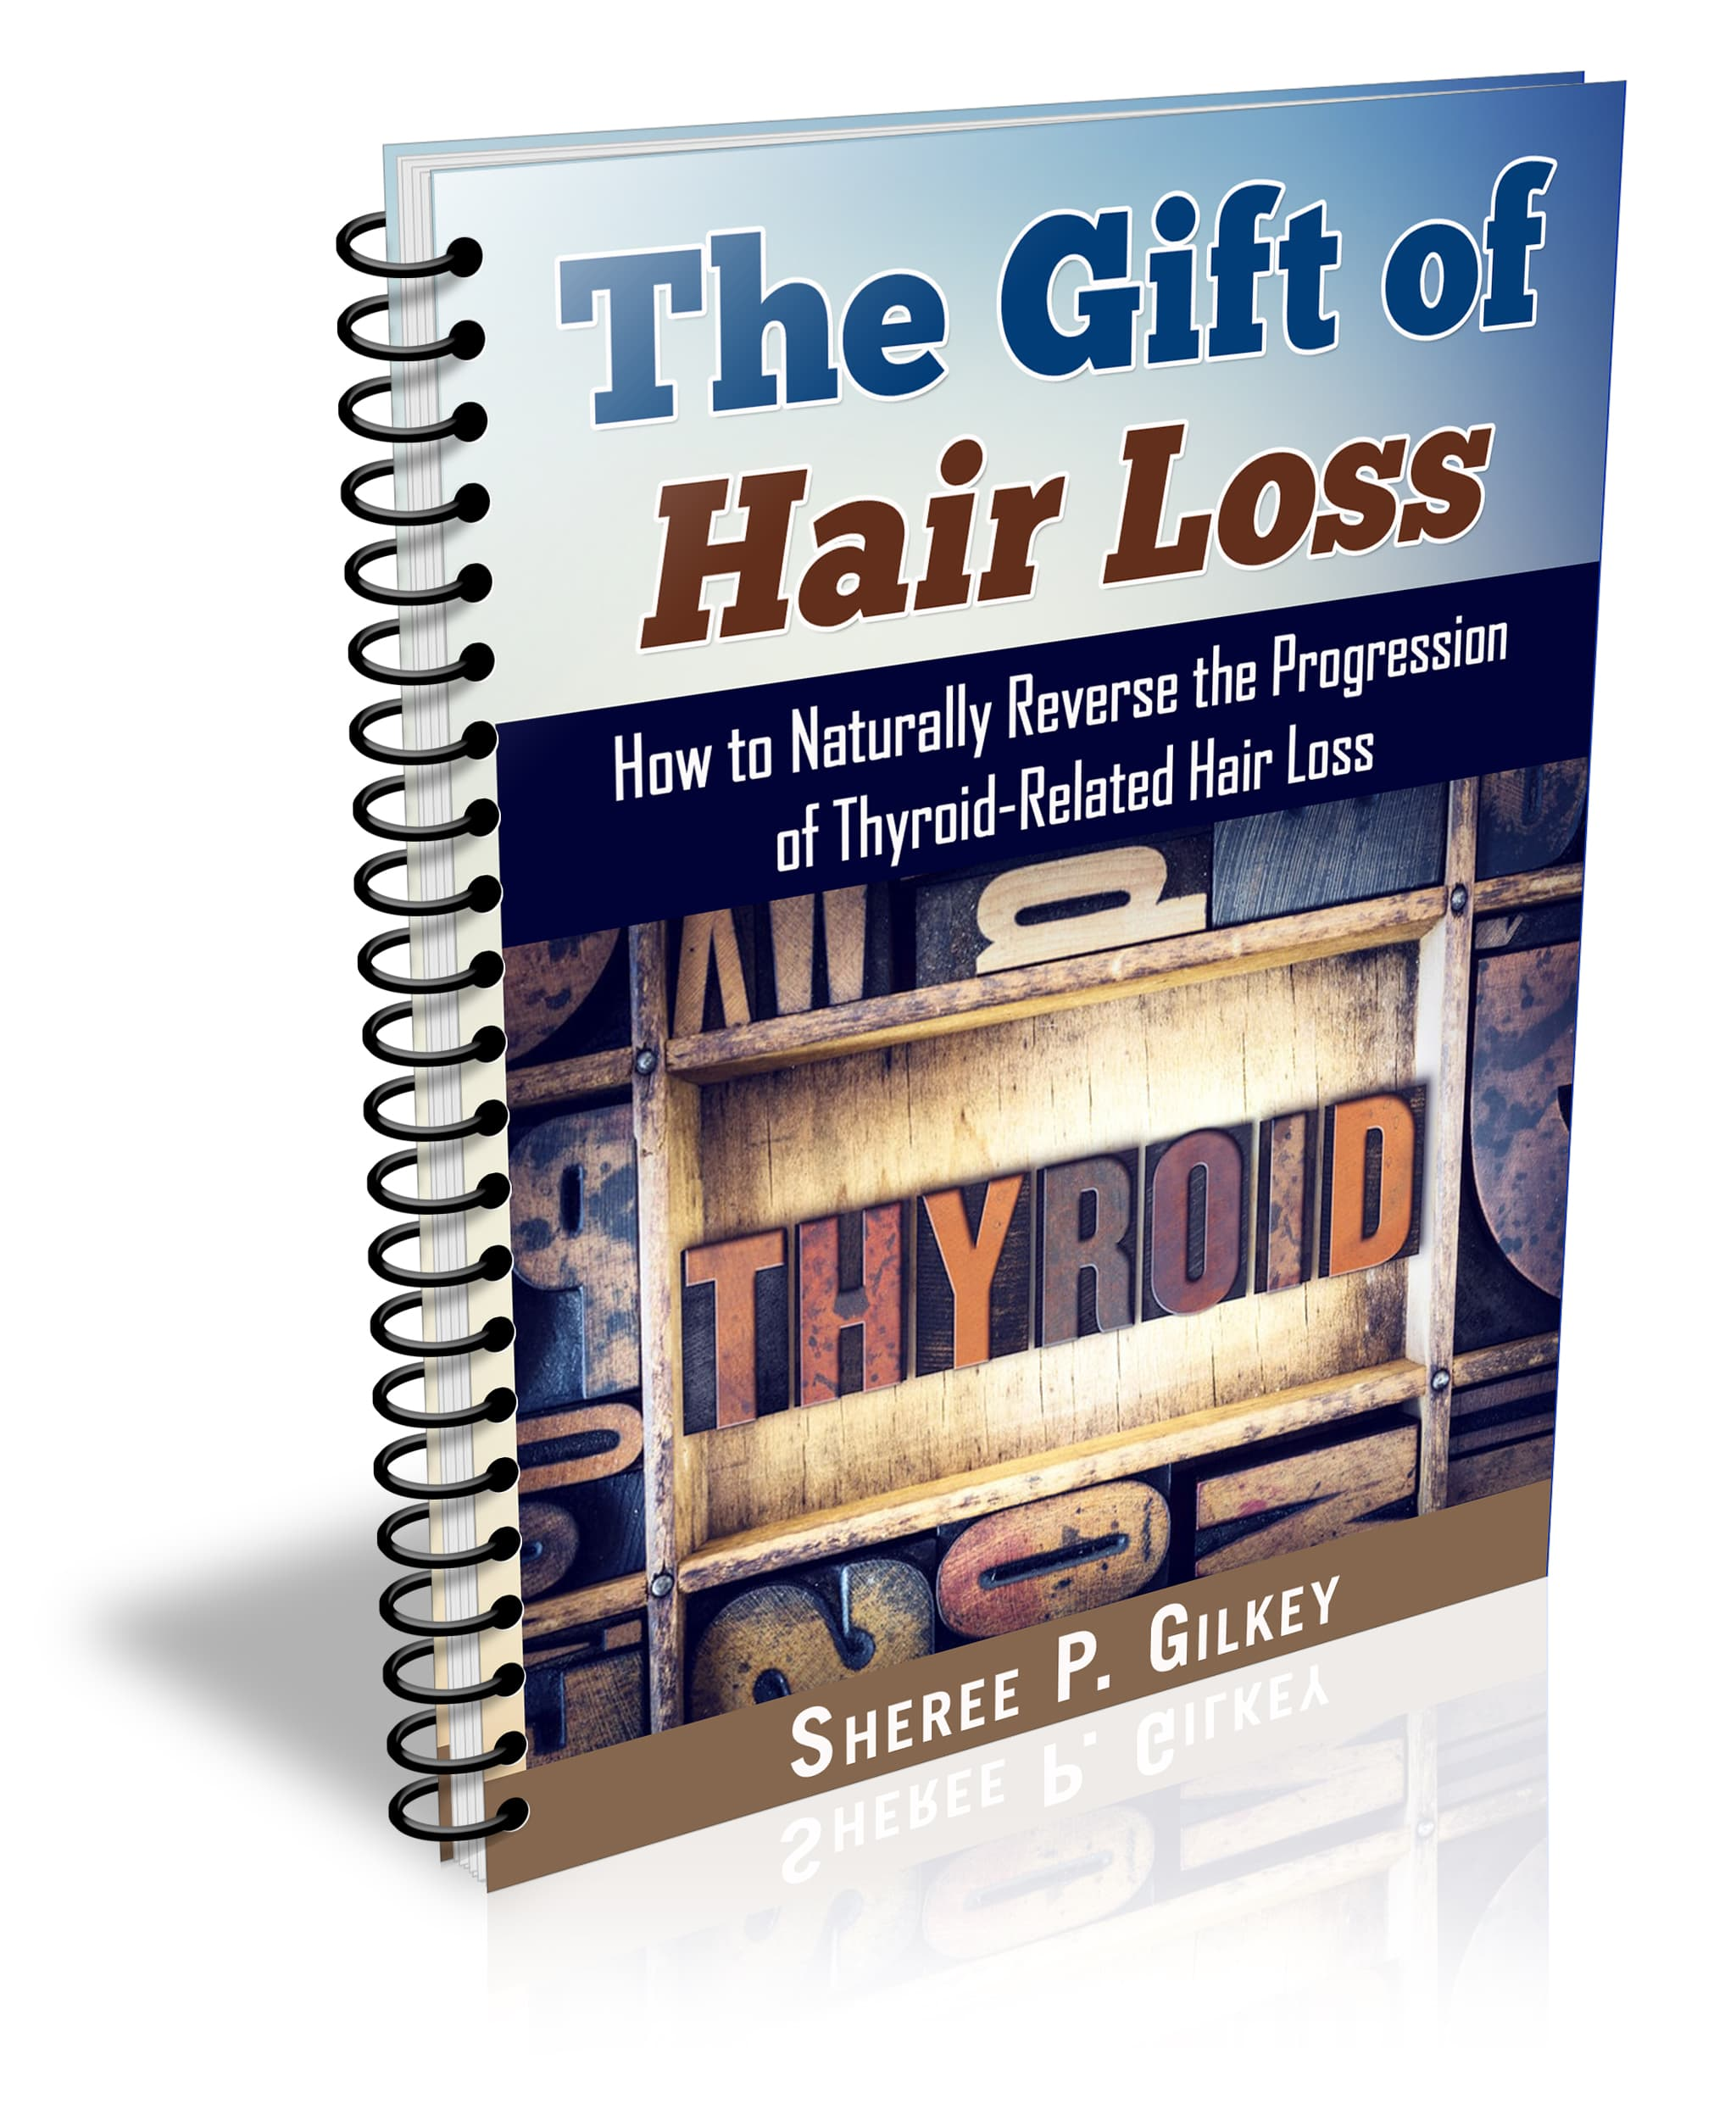 The Gift of Hair Loss